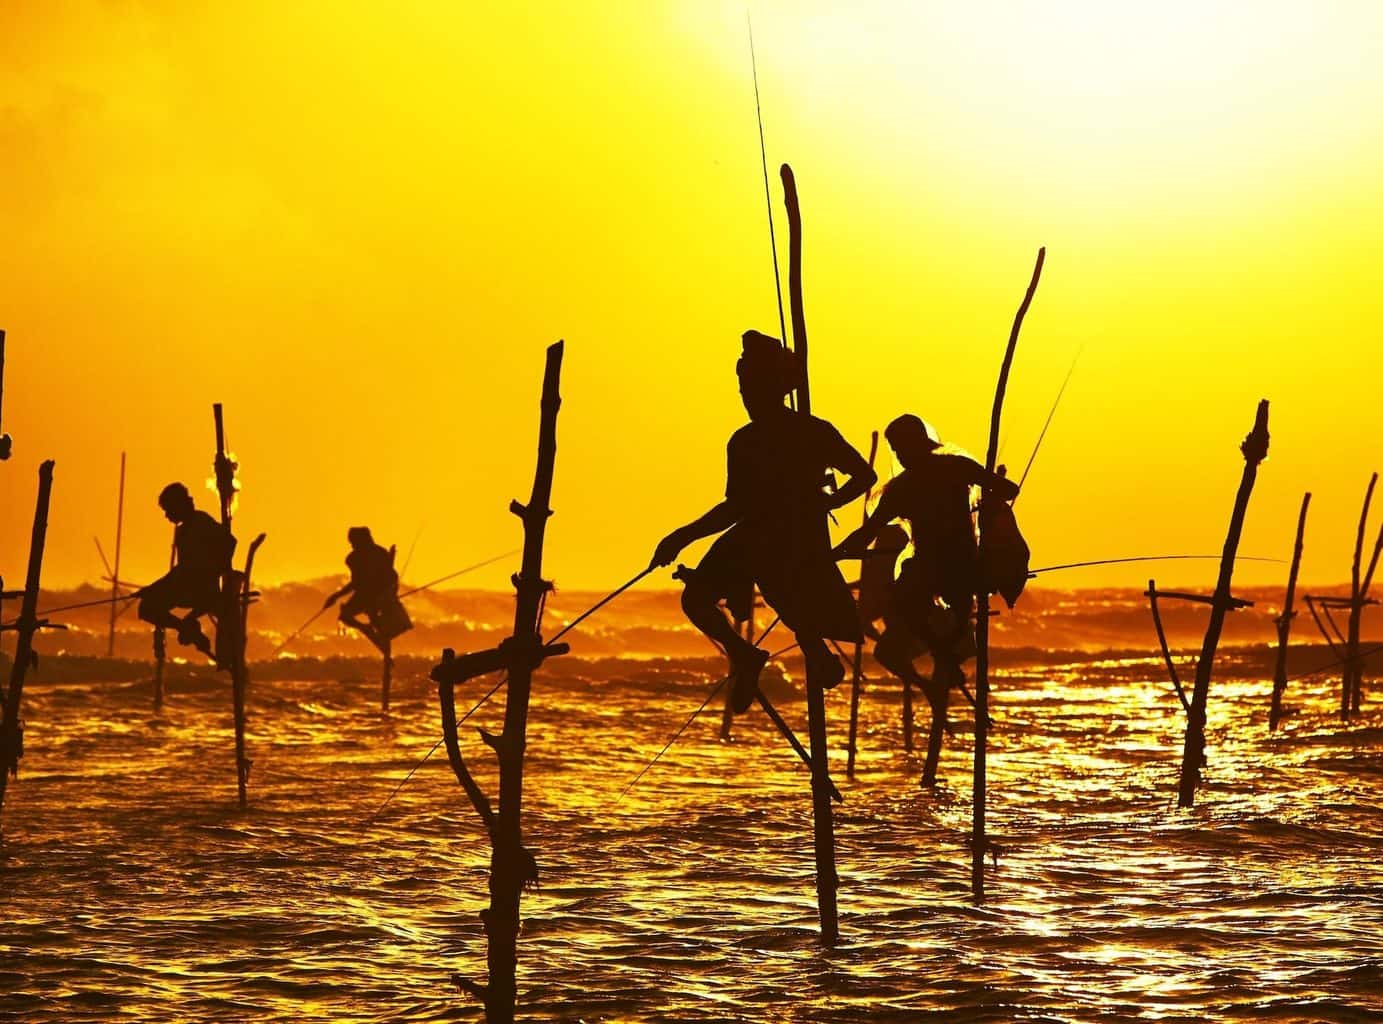 Luxury Sri Lanka Holidays silhoettes in water at sunset